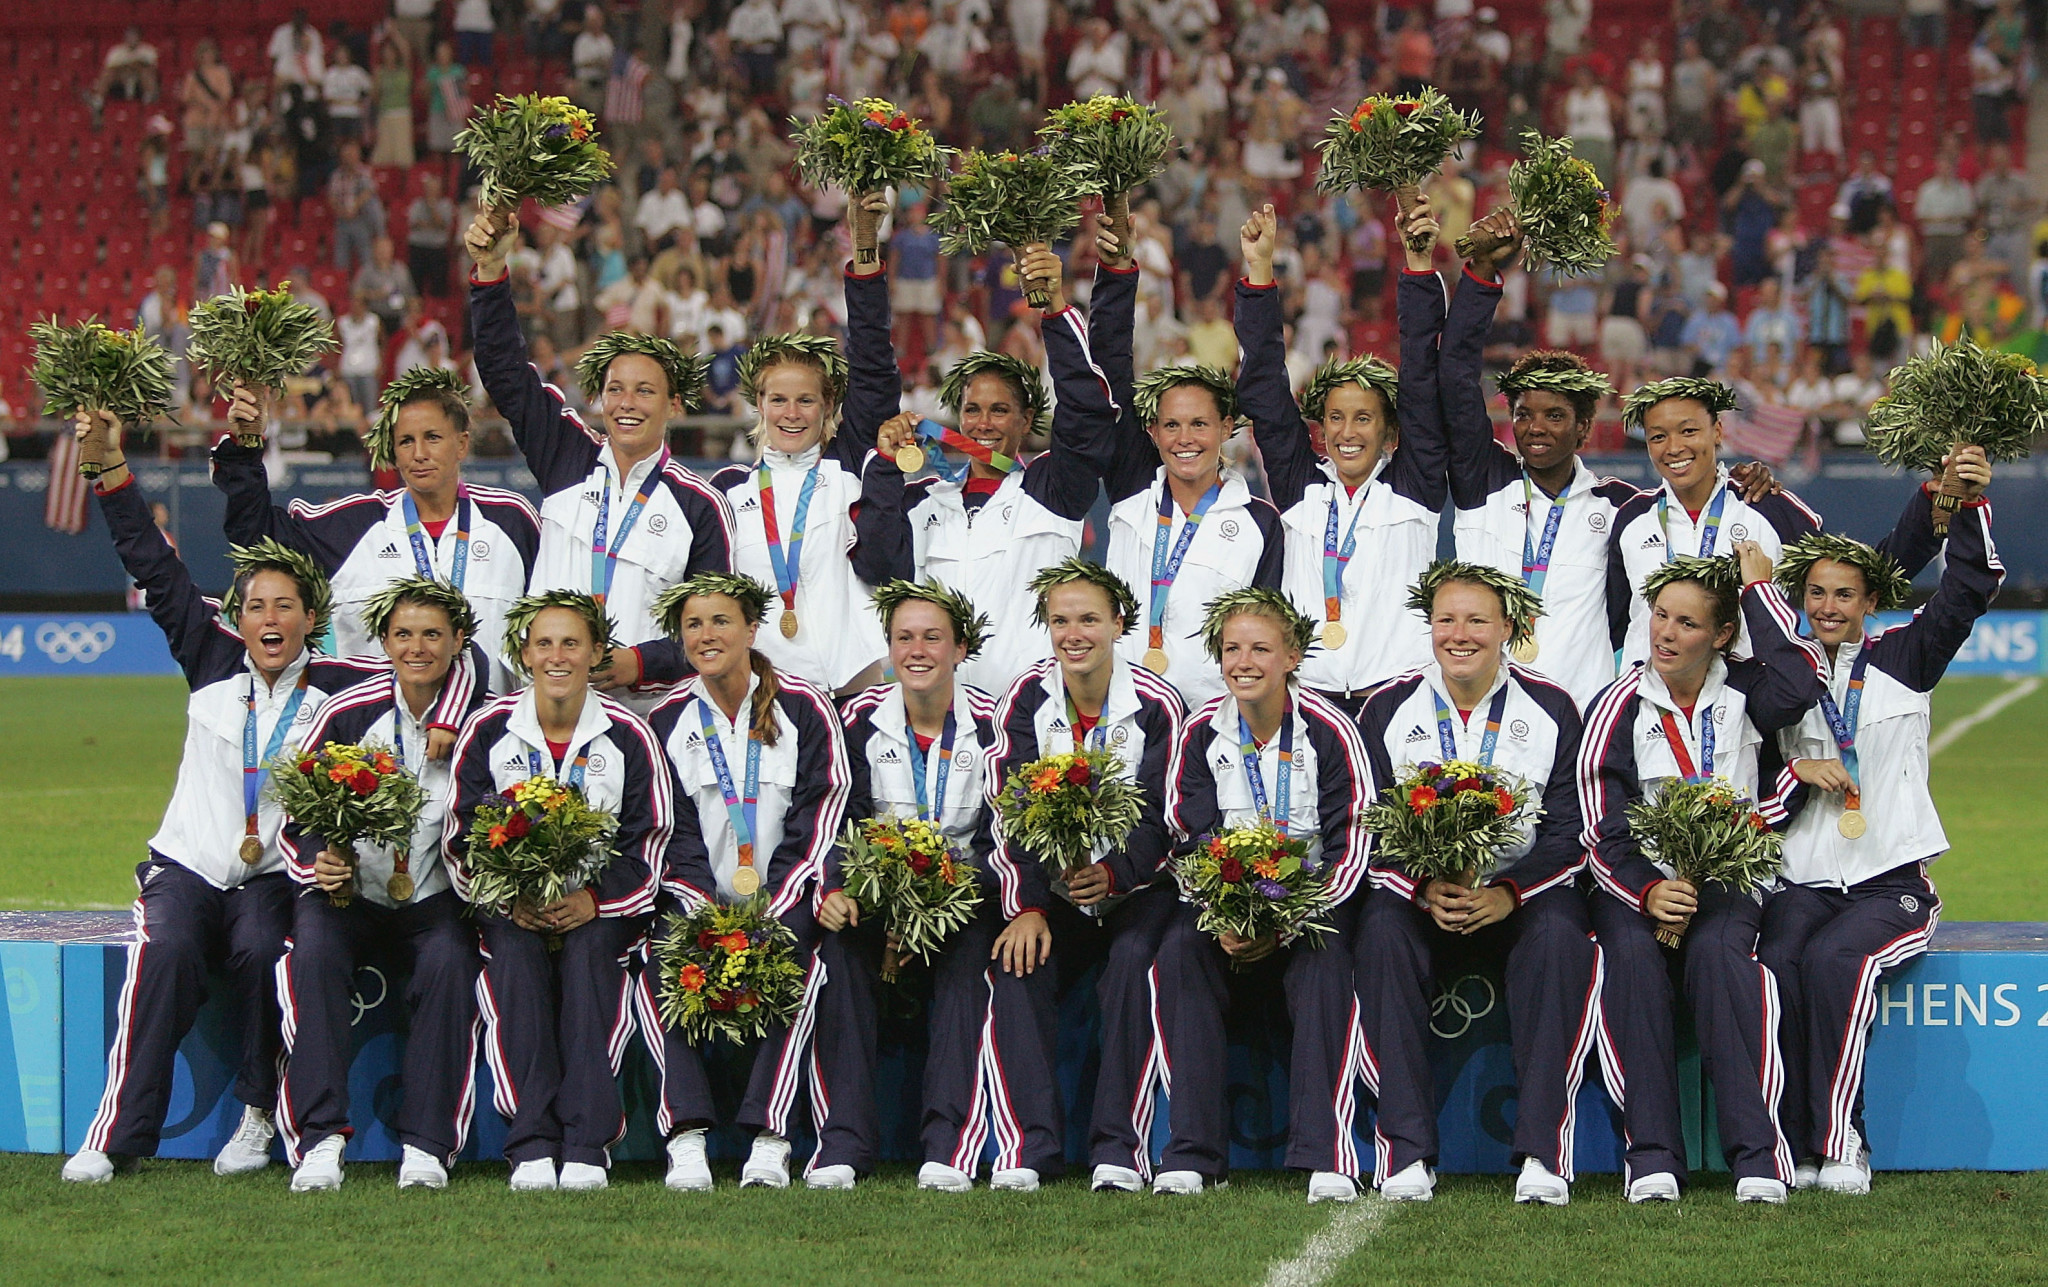 The United States Women's Team won Olympic gold at Athens 2004, beating several fellow Americans in their opening match against hosts Greece ©Getty Images